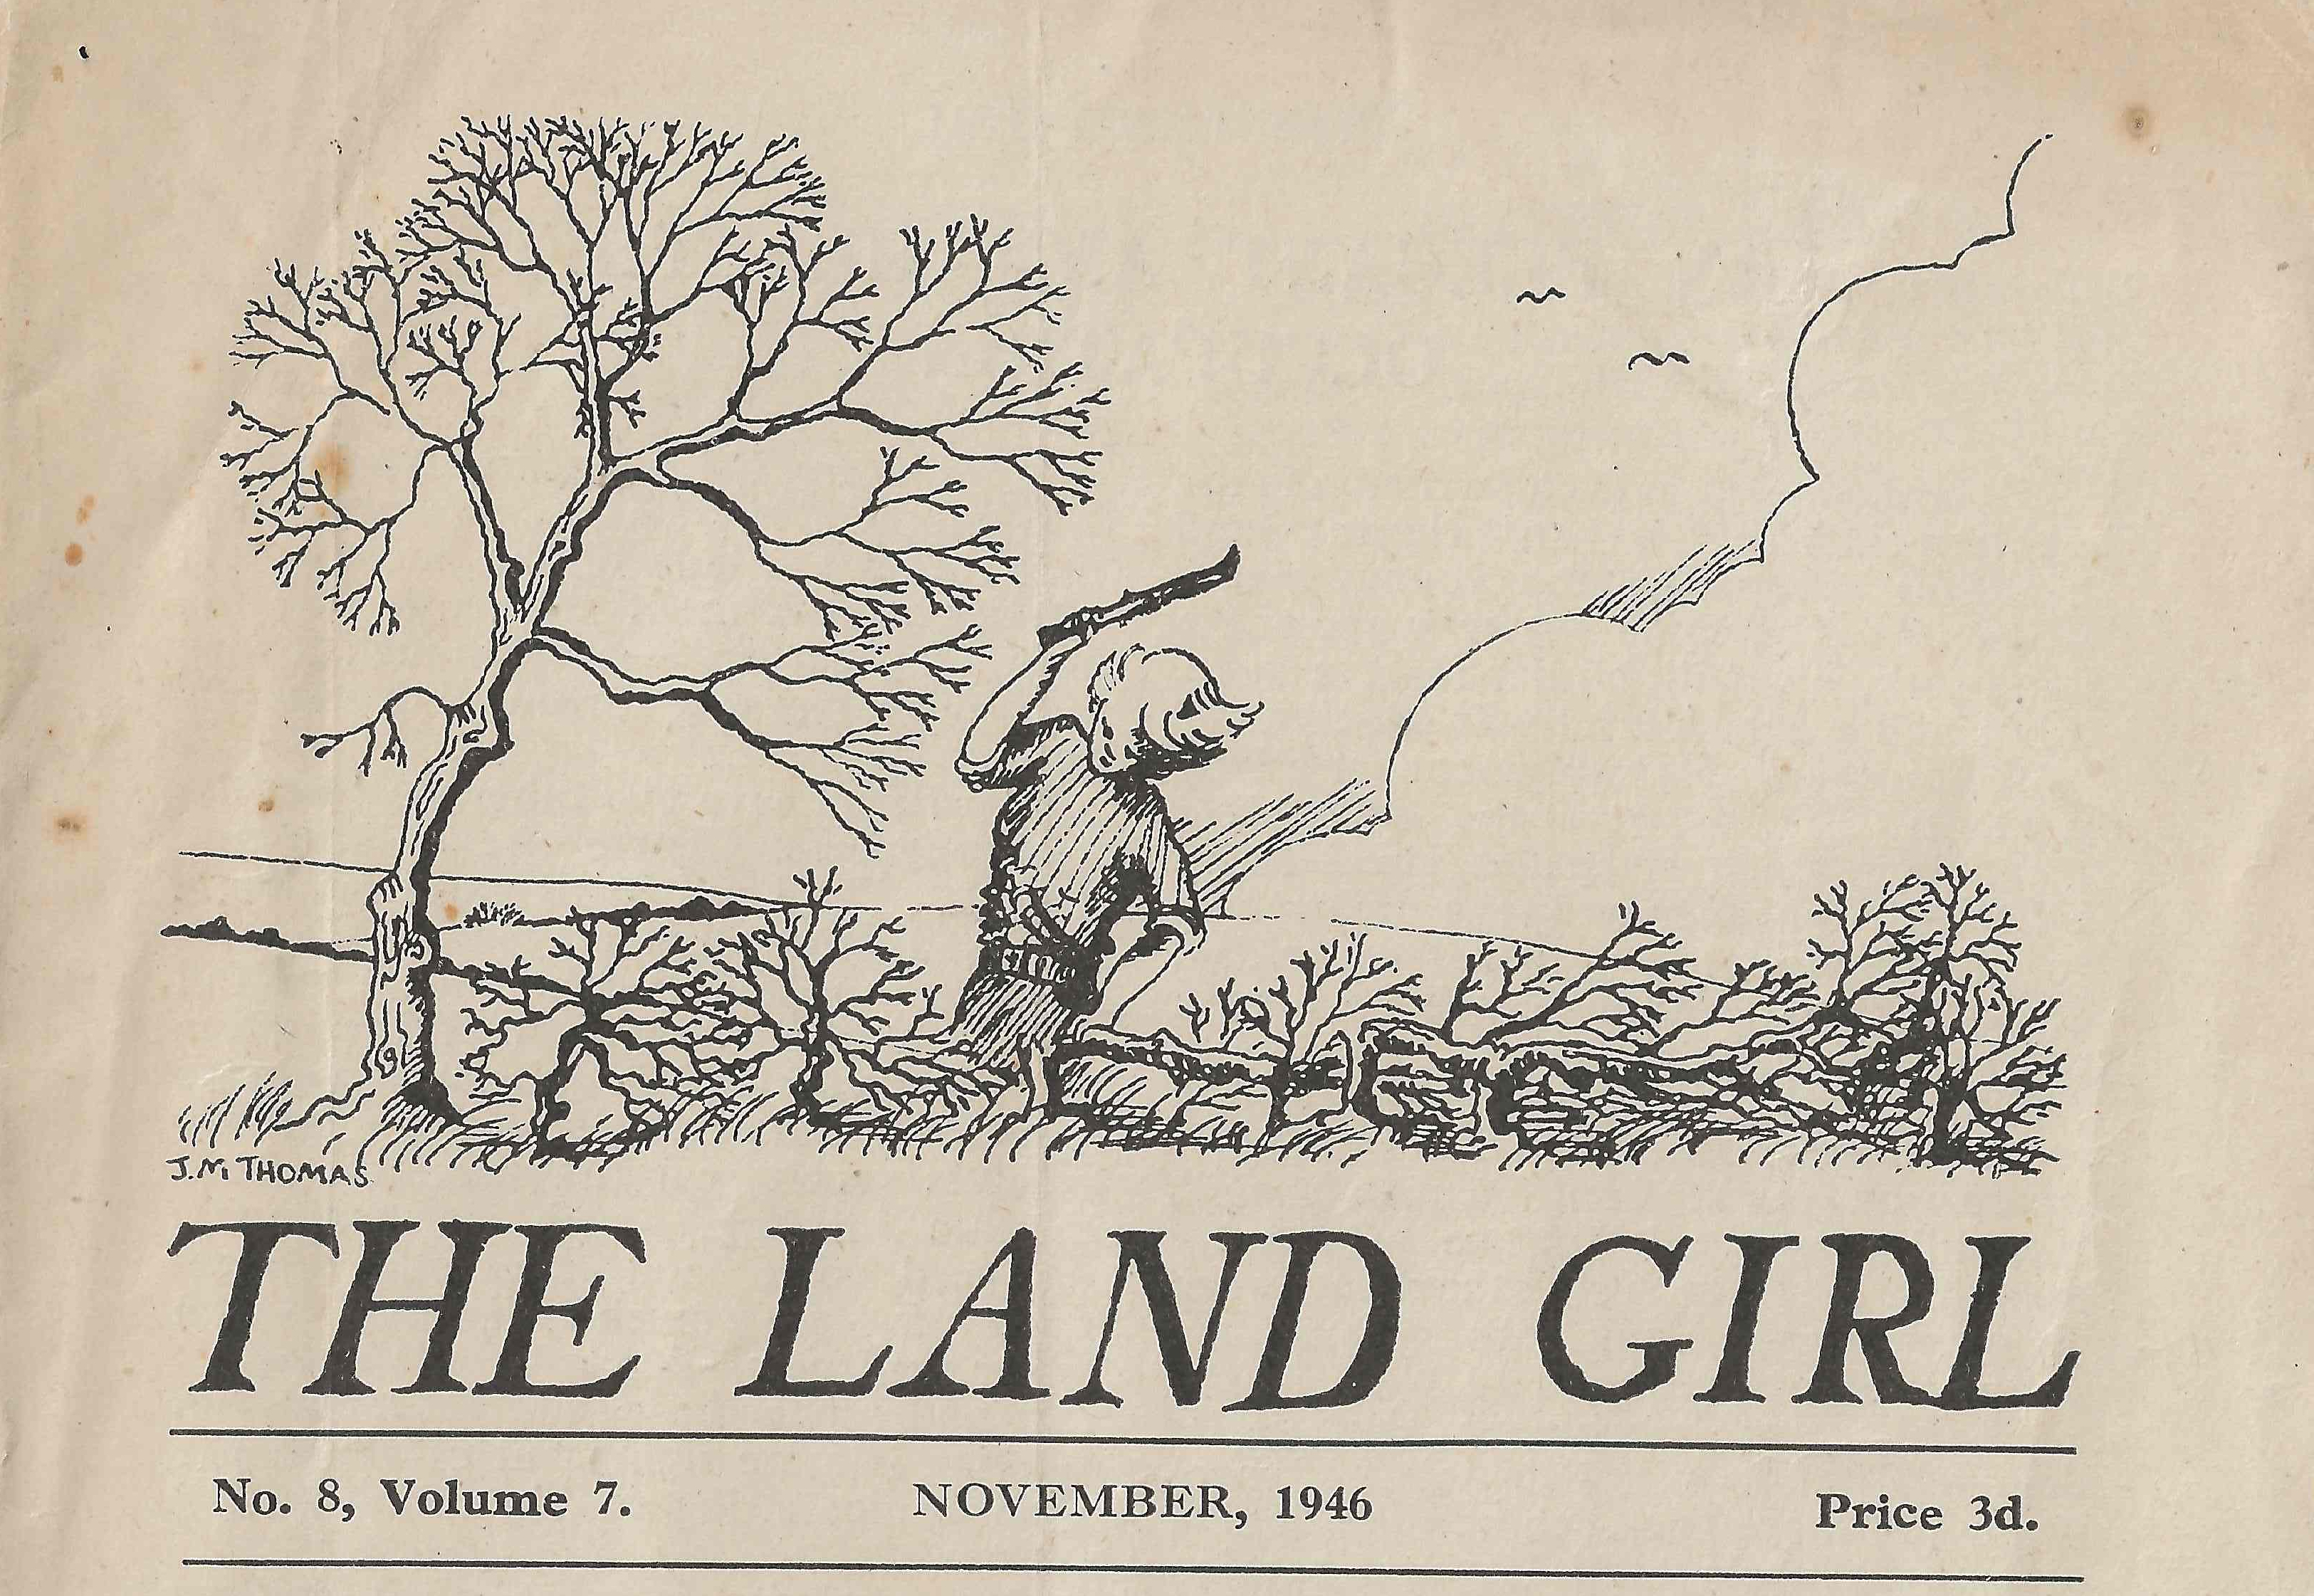 The Land Girl November 1946